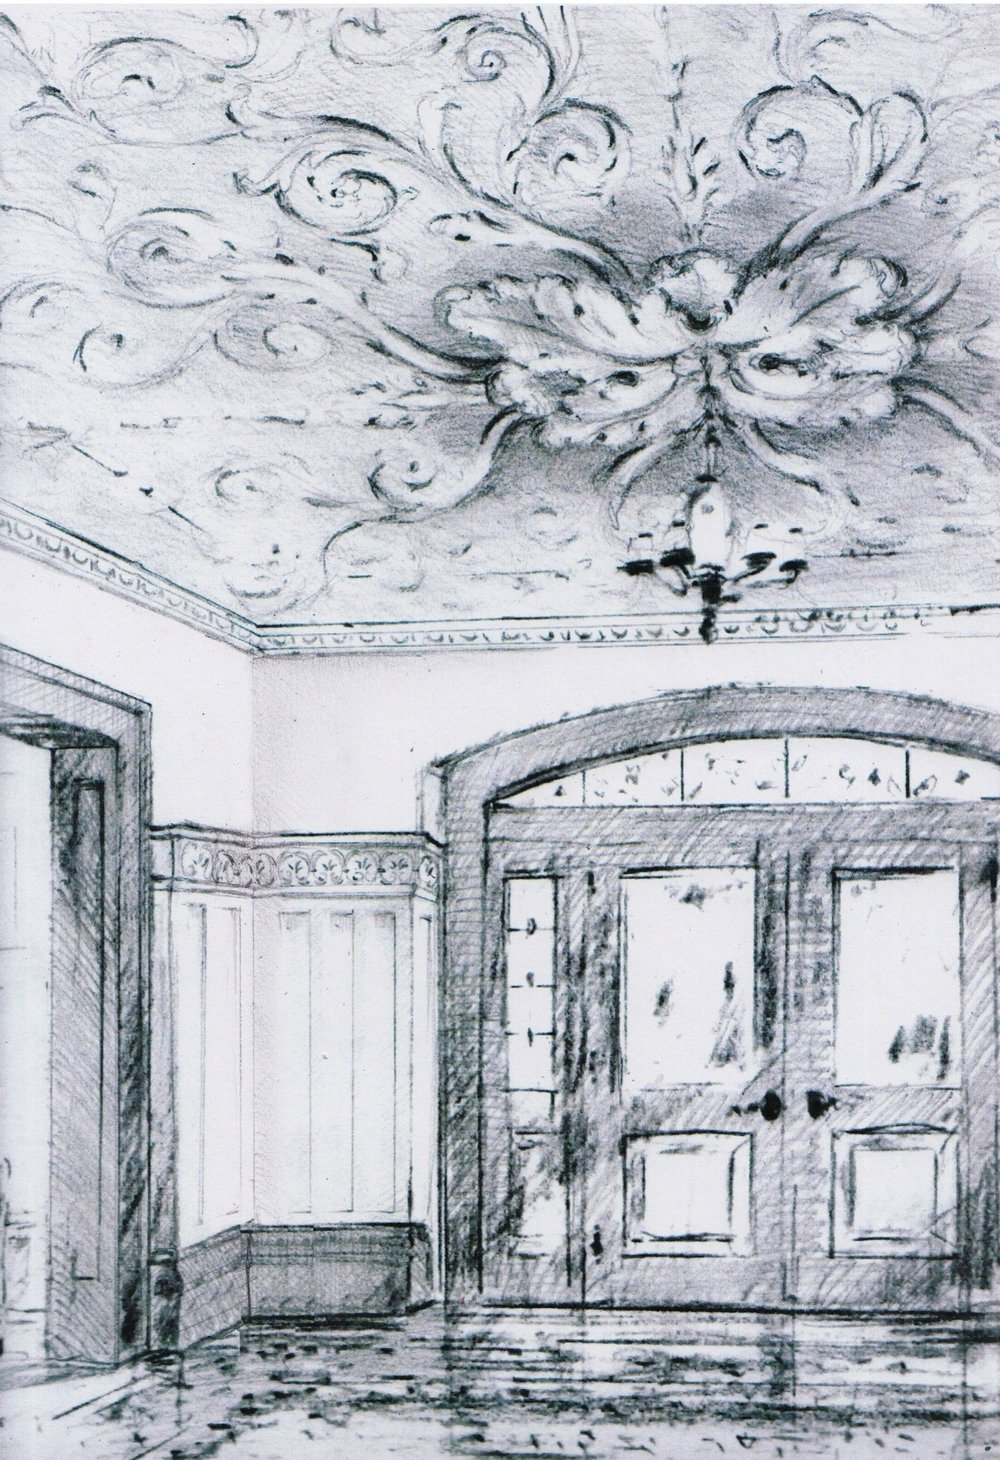 Preliminary sketch for an entryway with an ornamental ceiling, crown mouldings, and a wall finish.